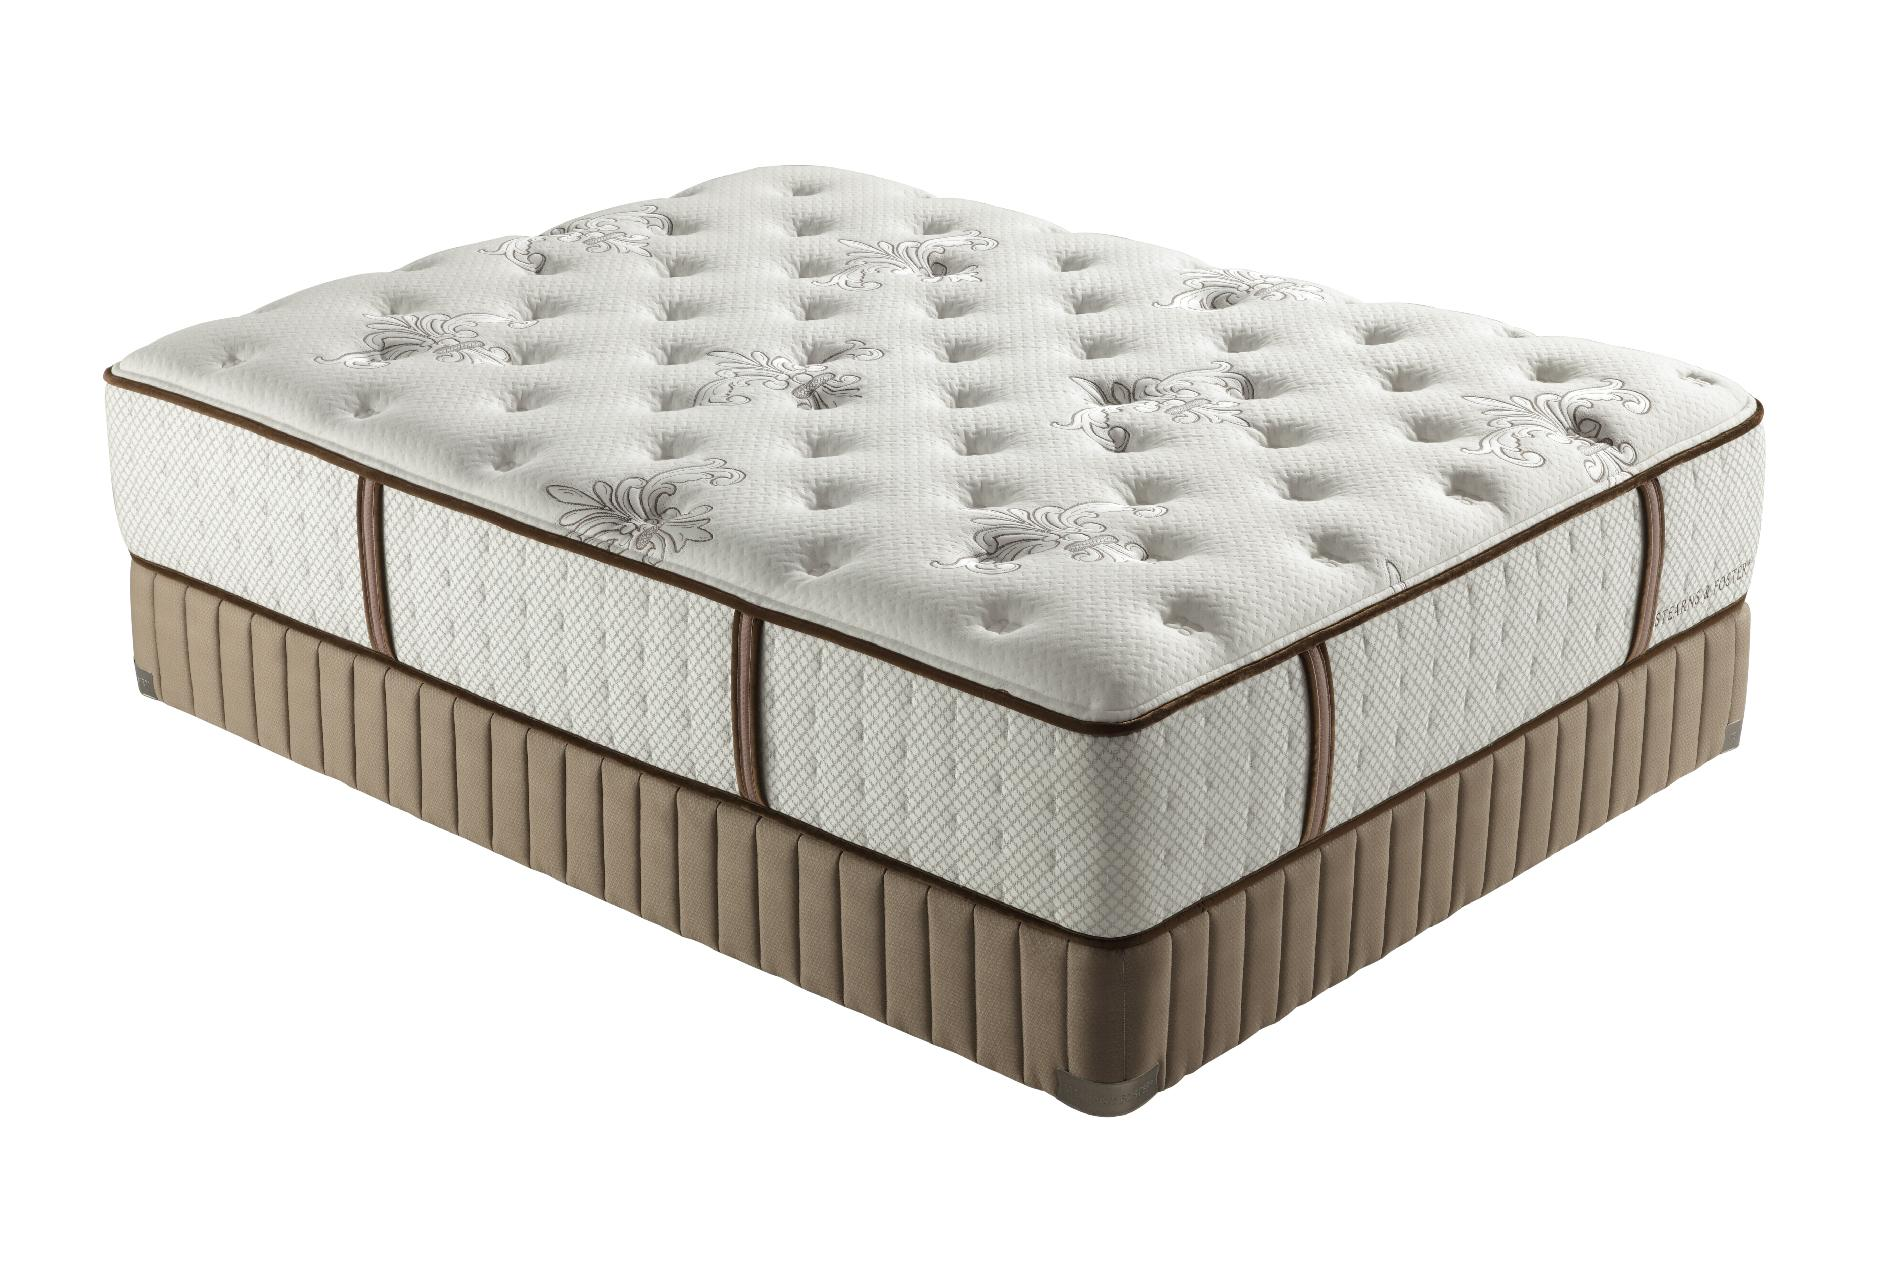 Stearns & Foster Estate Angie II Plush Queen Mattress Only